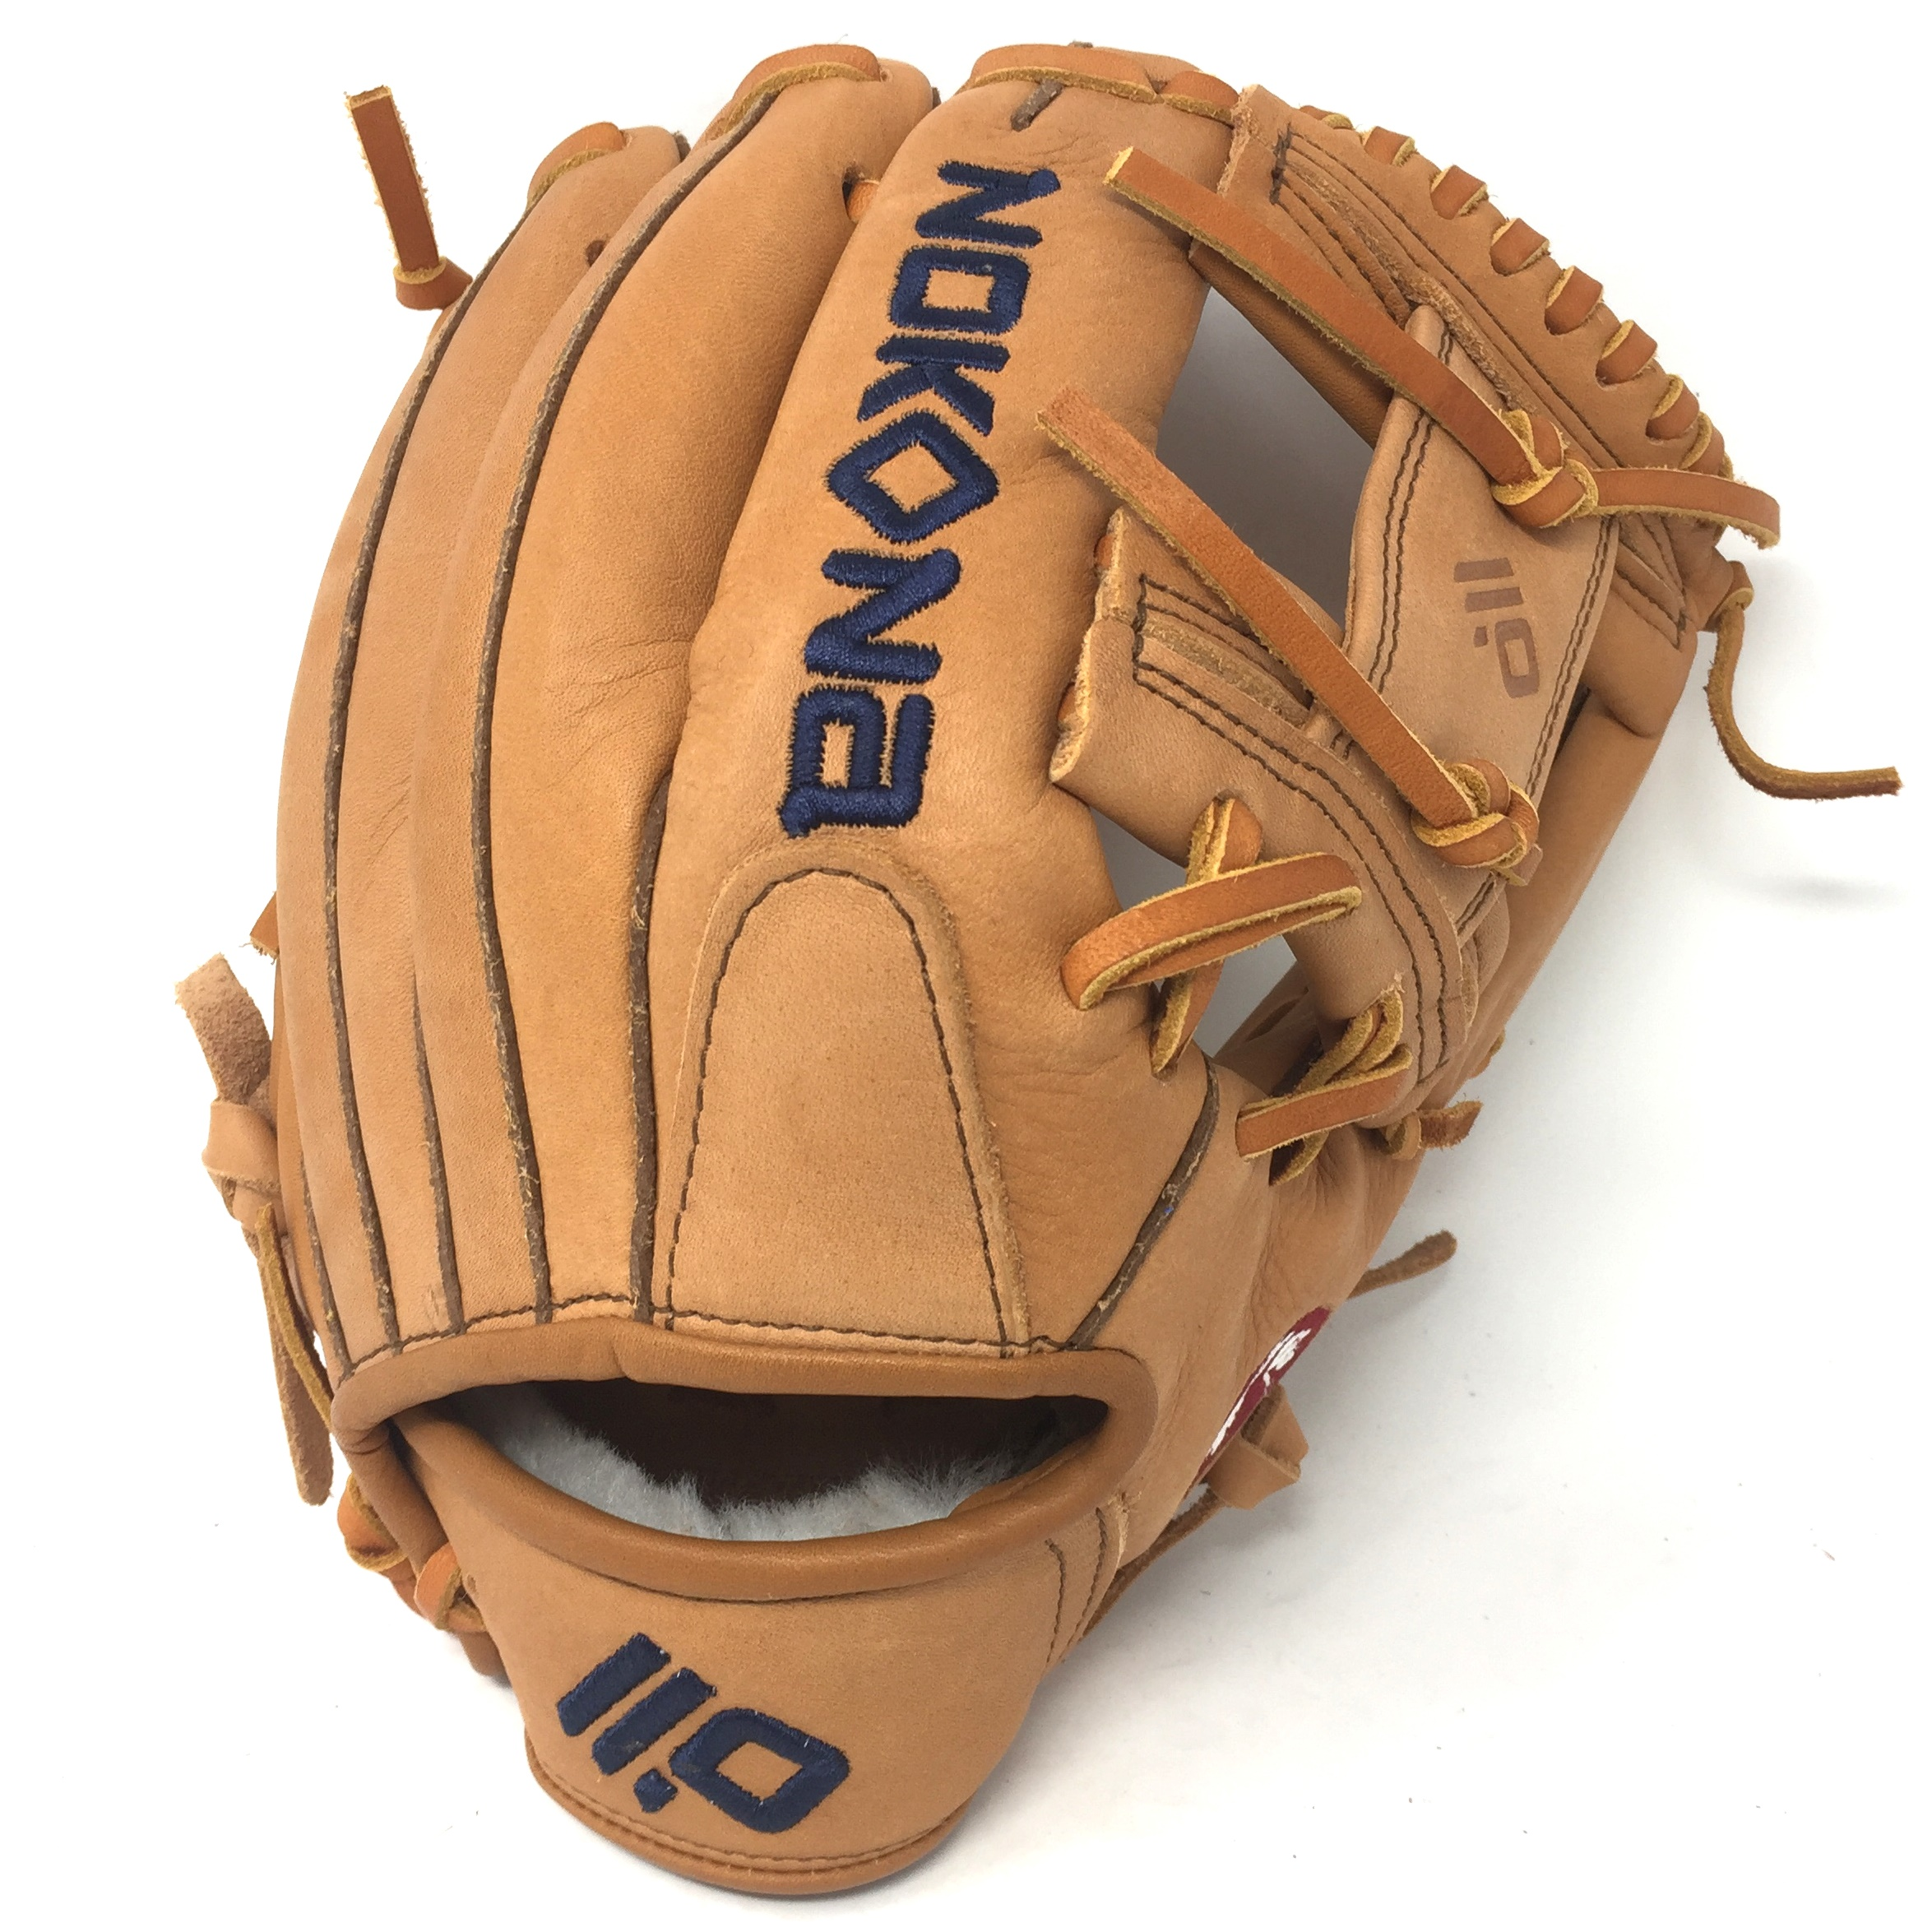 nokona-xft-11-5-baseball-glove-i-web-tan-right-hand-throw XFT-1150I-TN-RightHandThrow  808808899242 Nokonas Nokonas all new Supersoft Series gloves are made from premium